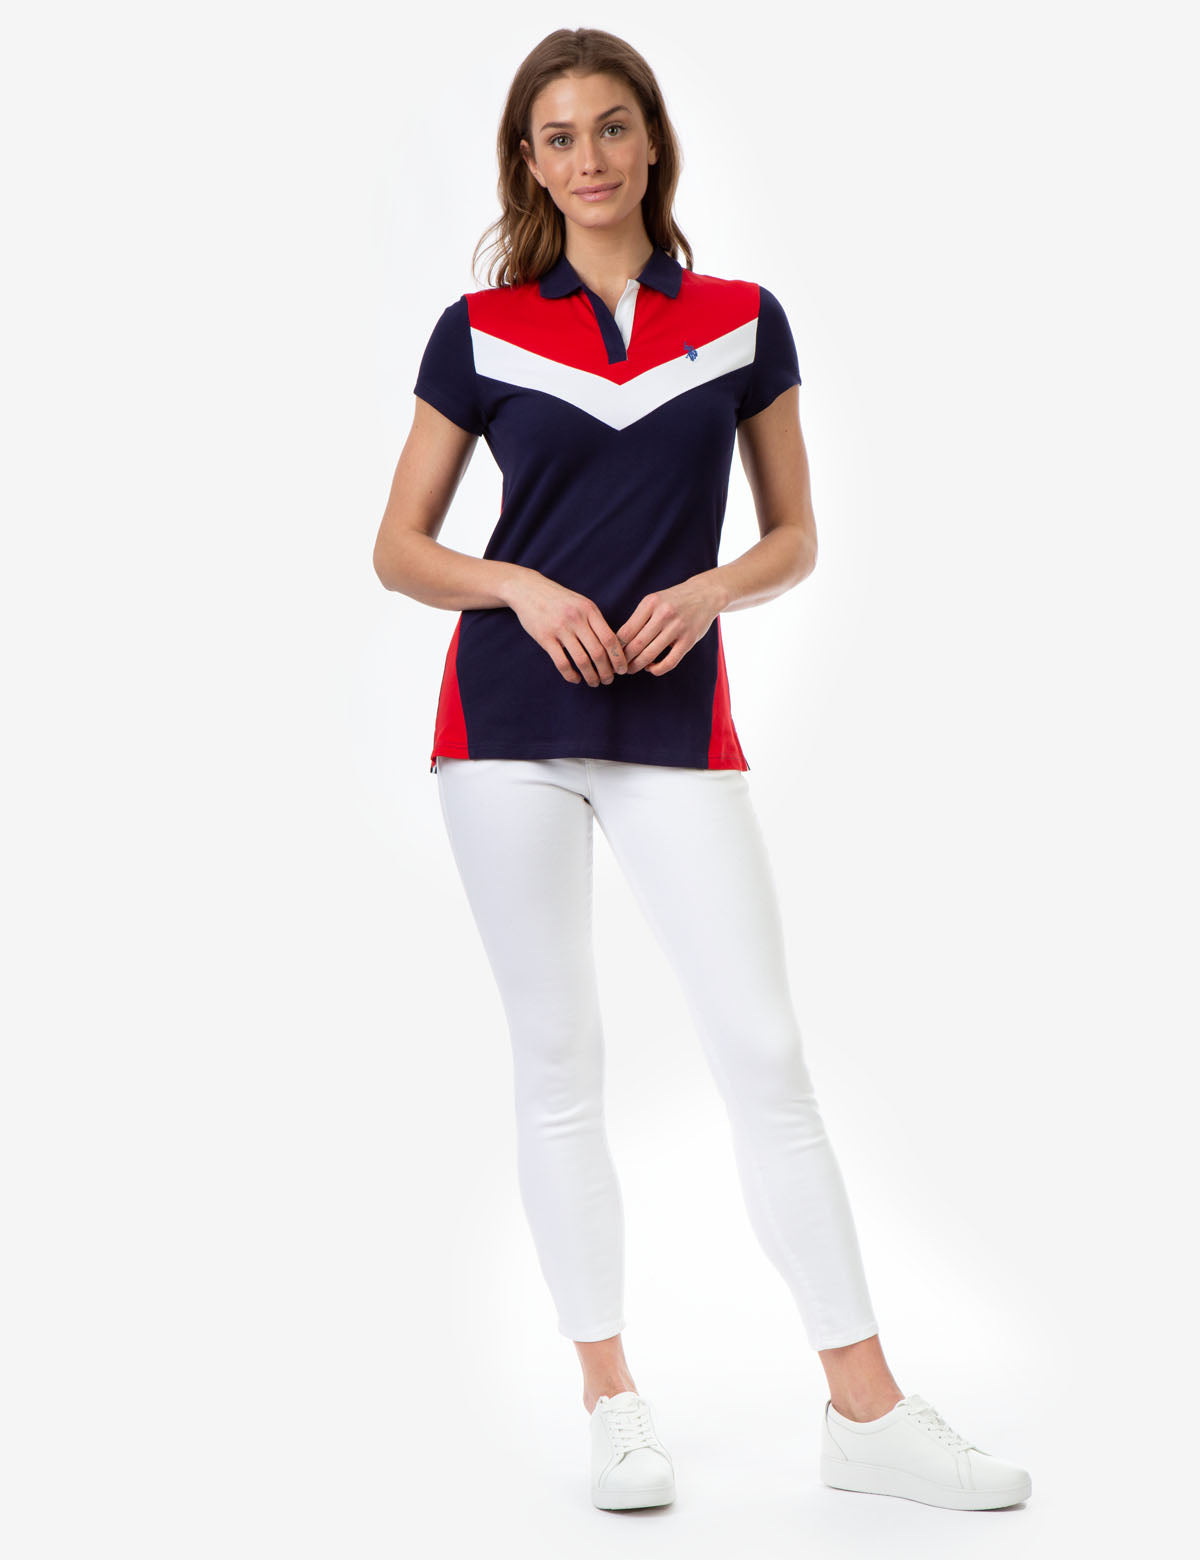 CHEVRON COLORBLOCK POLO SHIRT - U.S. Polo Assn.